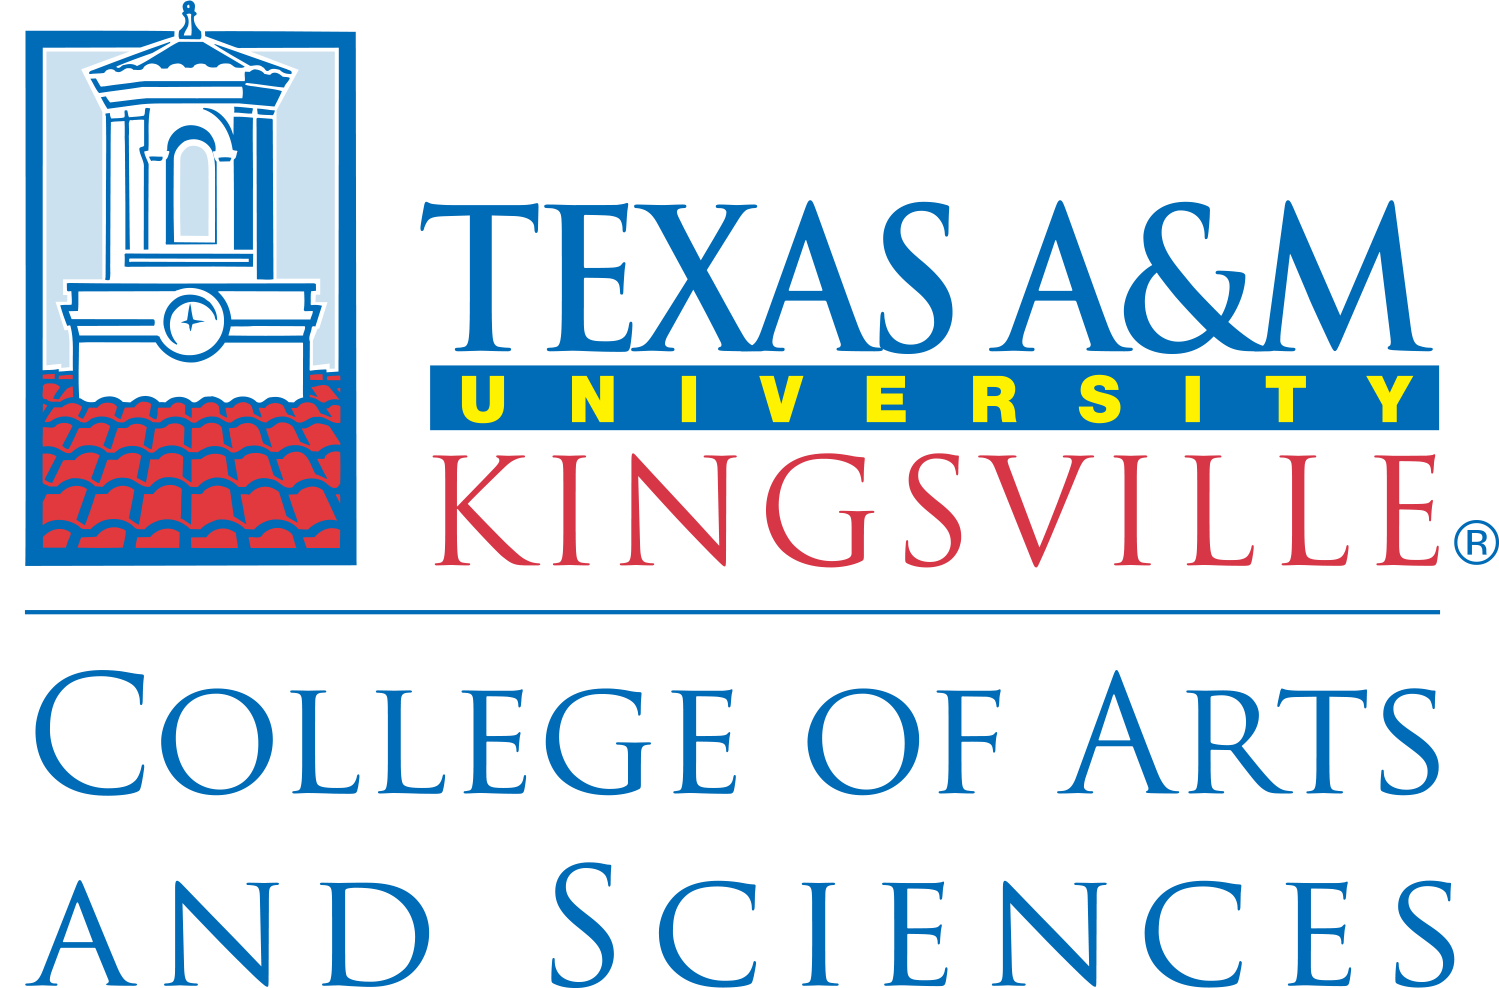 Texas A&M Kingsville, Arts and Sciences Logo